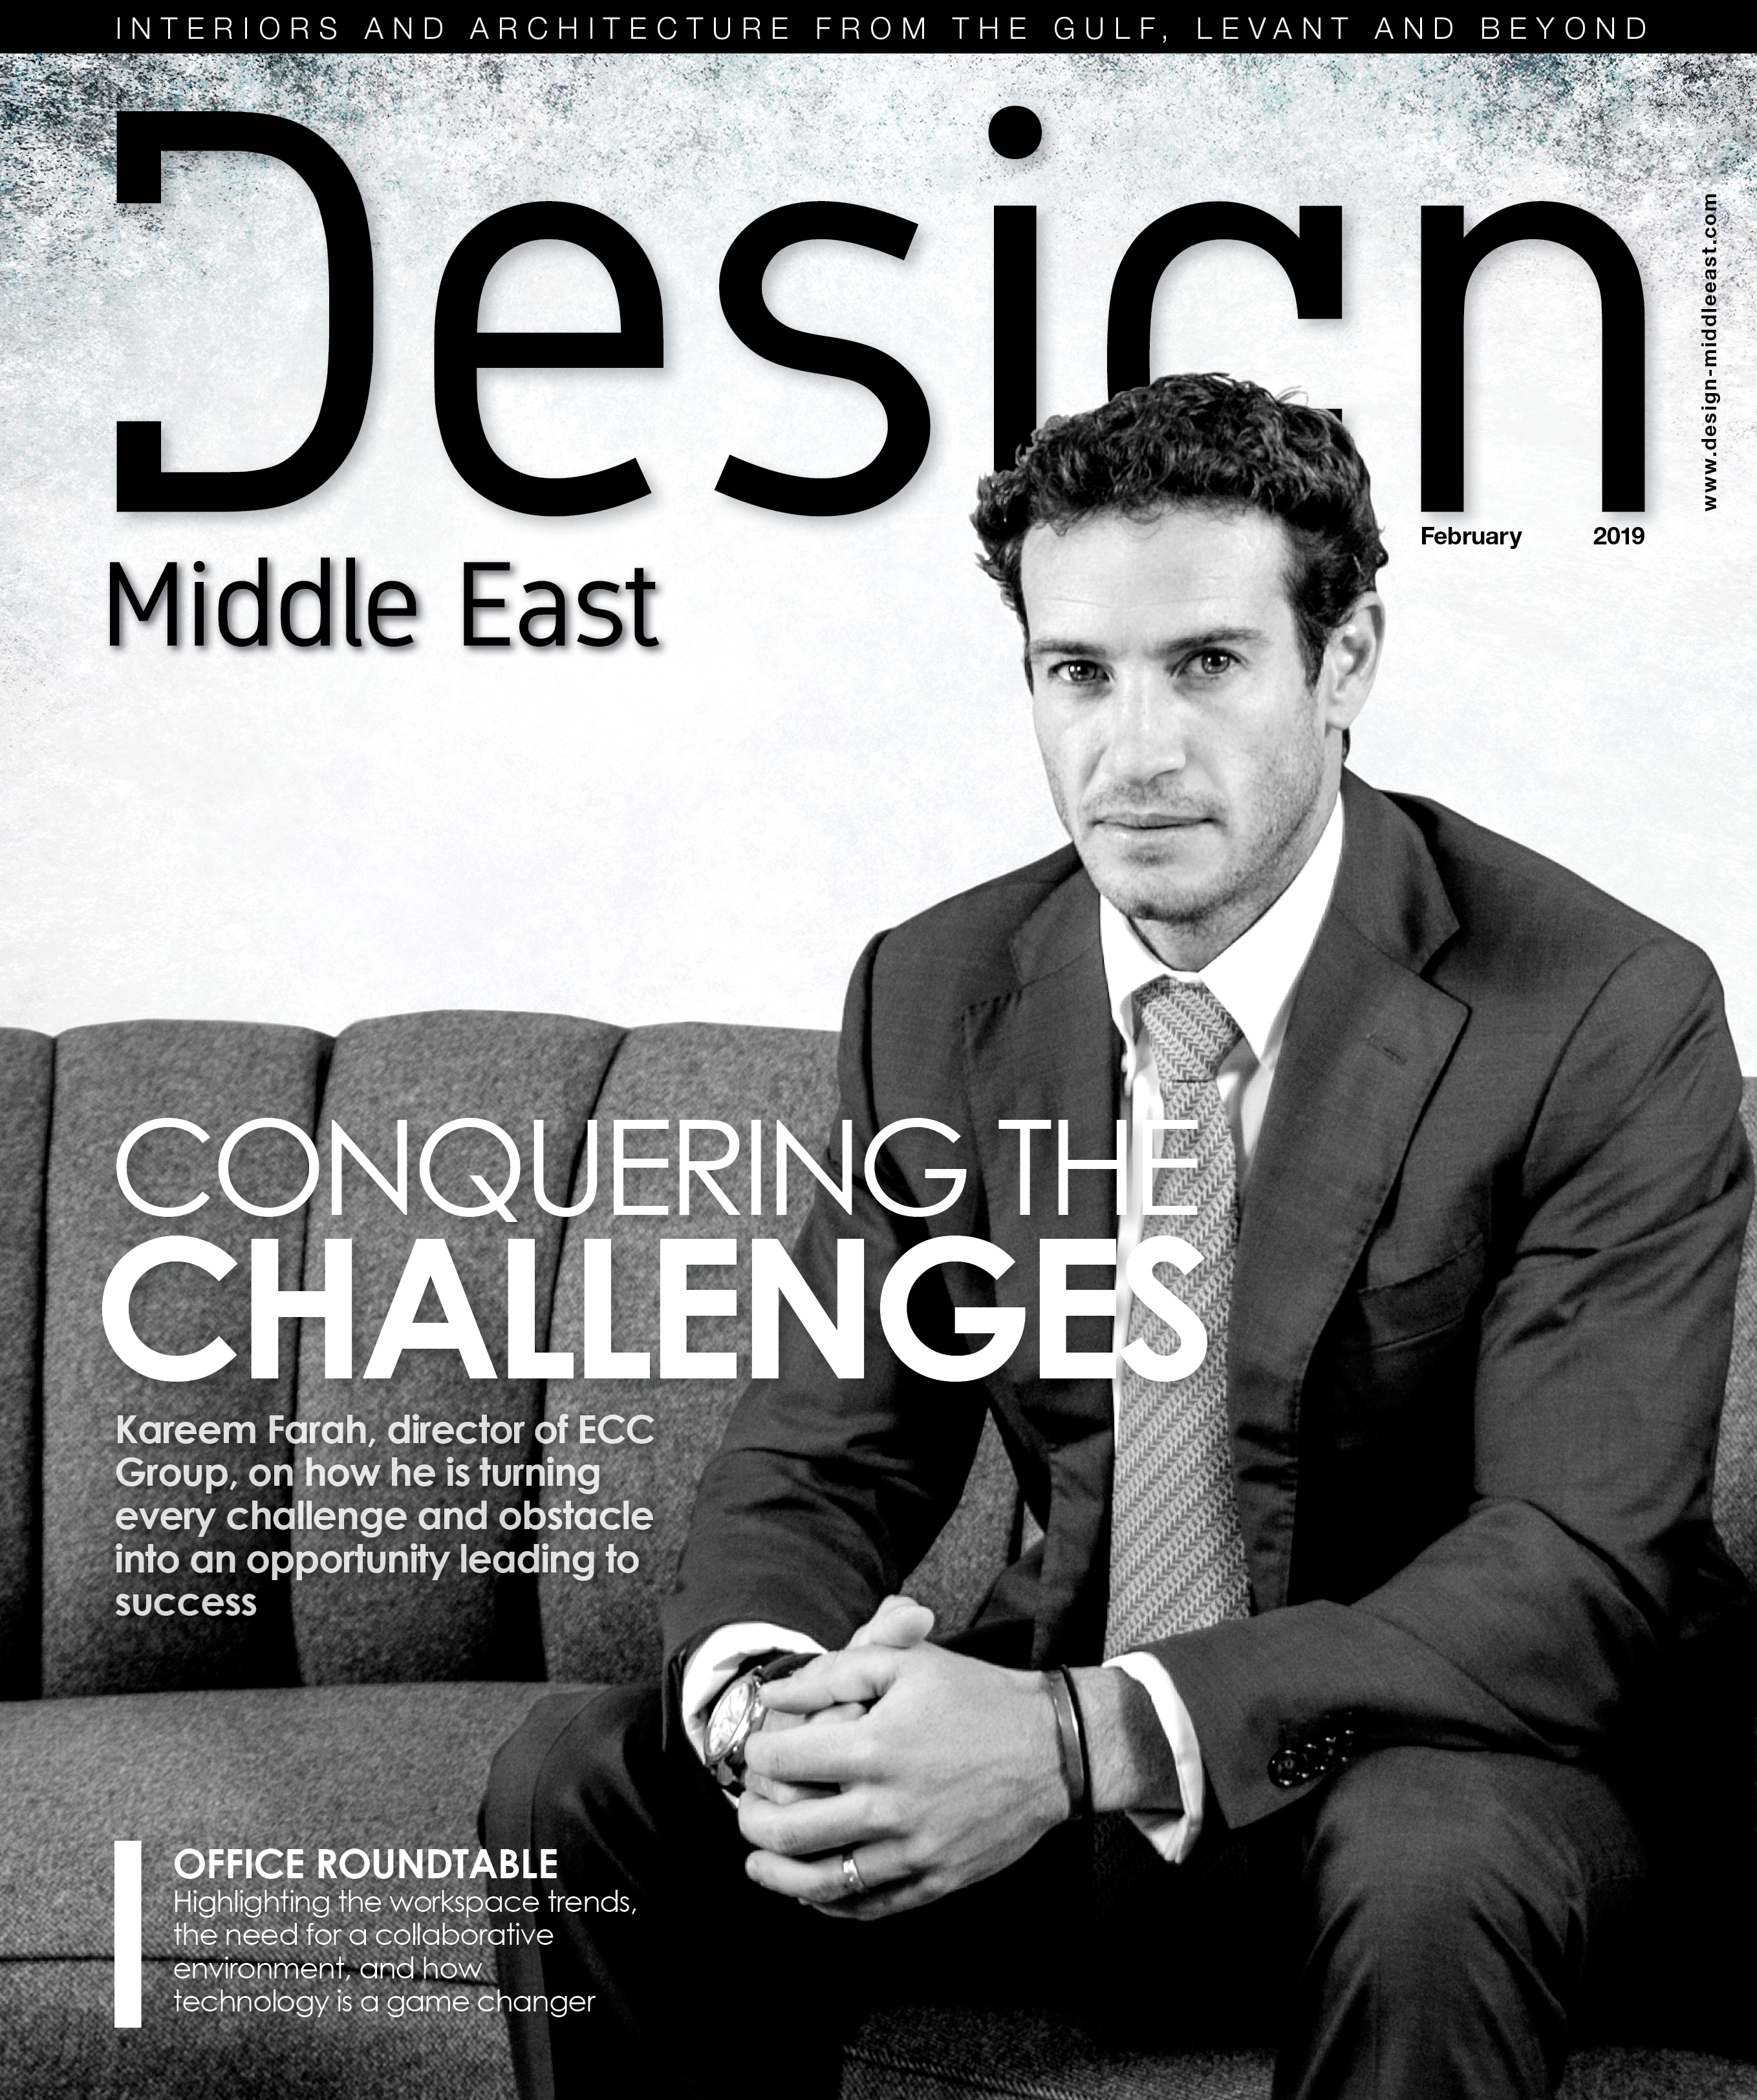 https://www.cbnme.com/magazines/design-middle-east-february-2019/